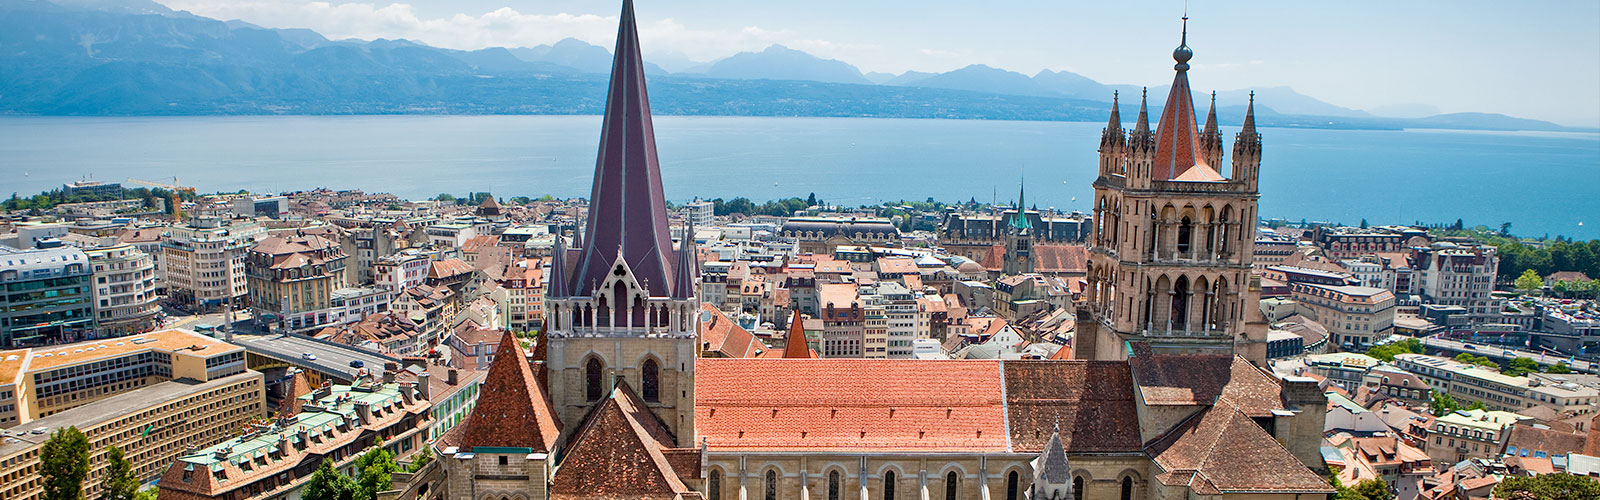 lausanne-cathedrale